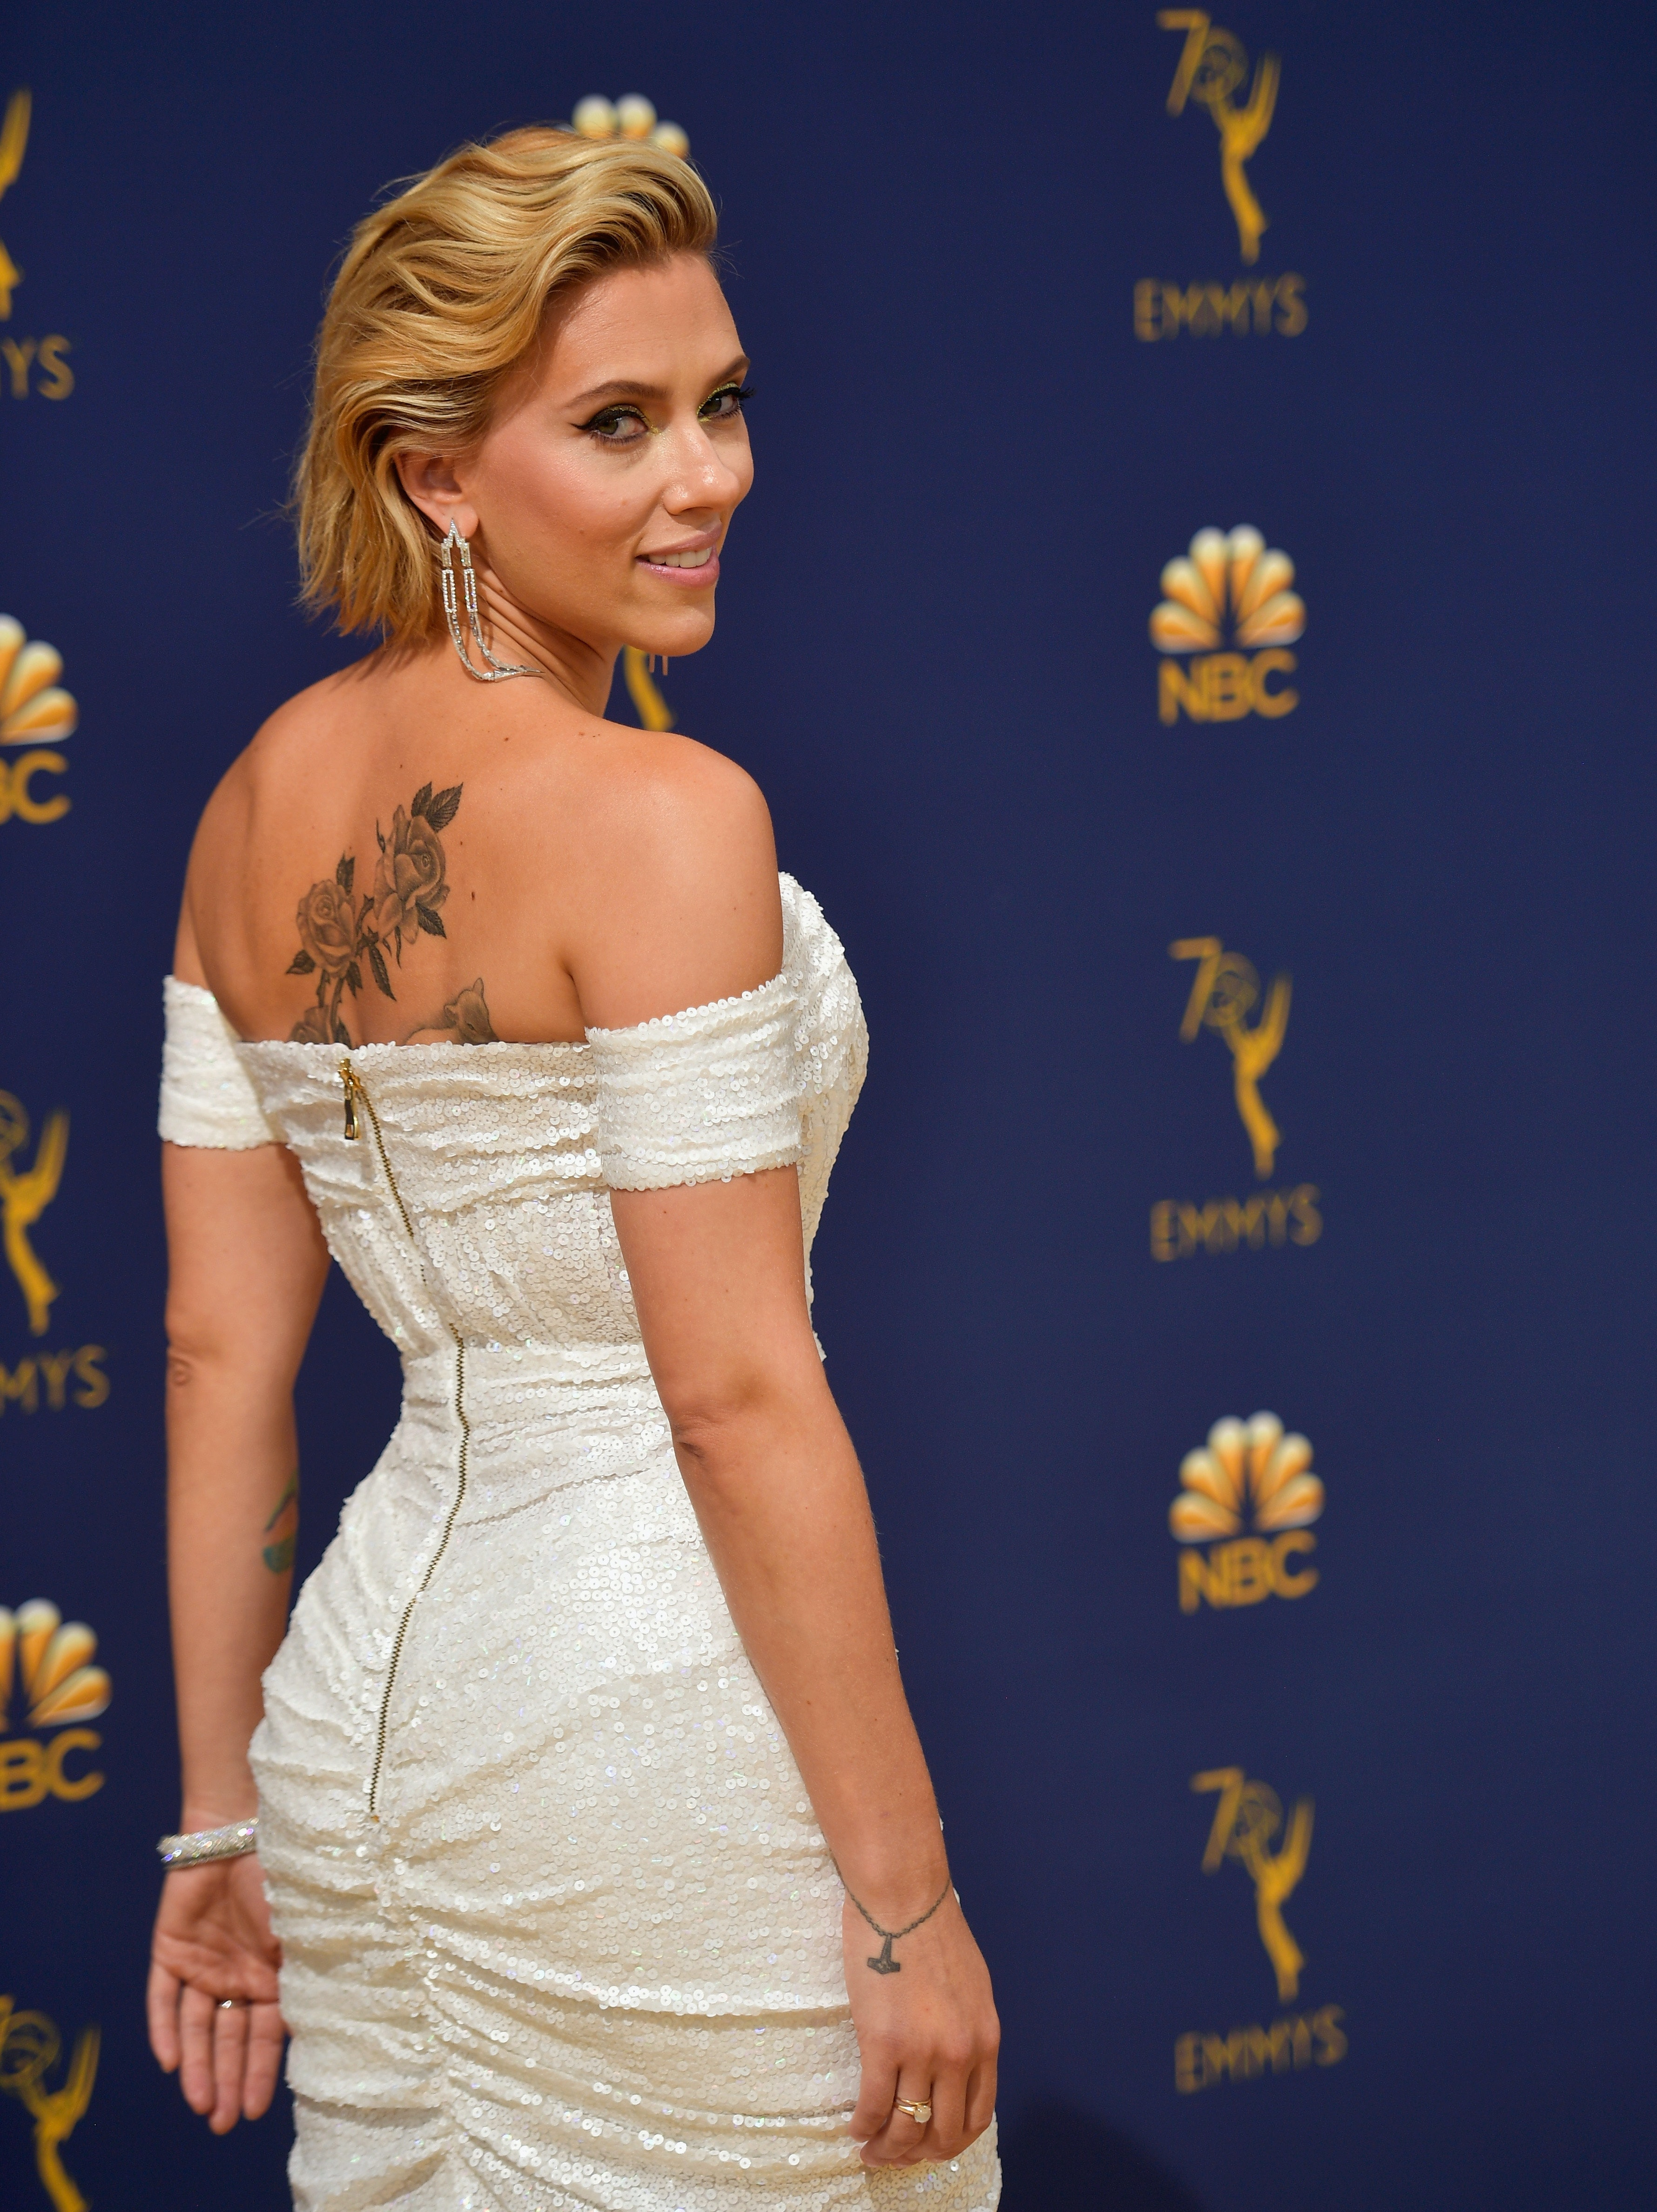 Scarlett Johansson Debuts Blonde Hair At The 2018 Emmys With A Great New Cut Too